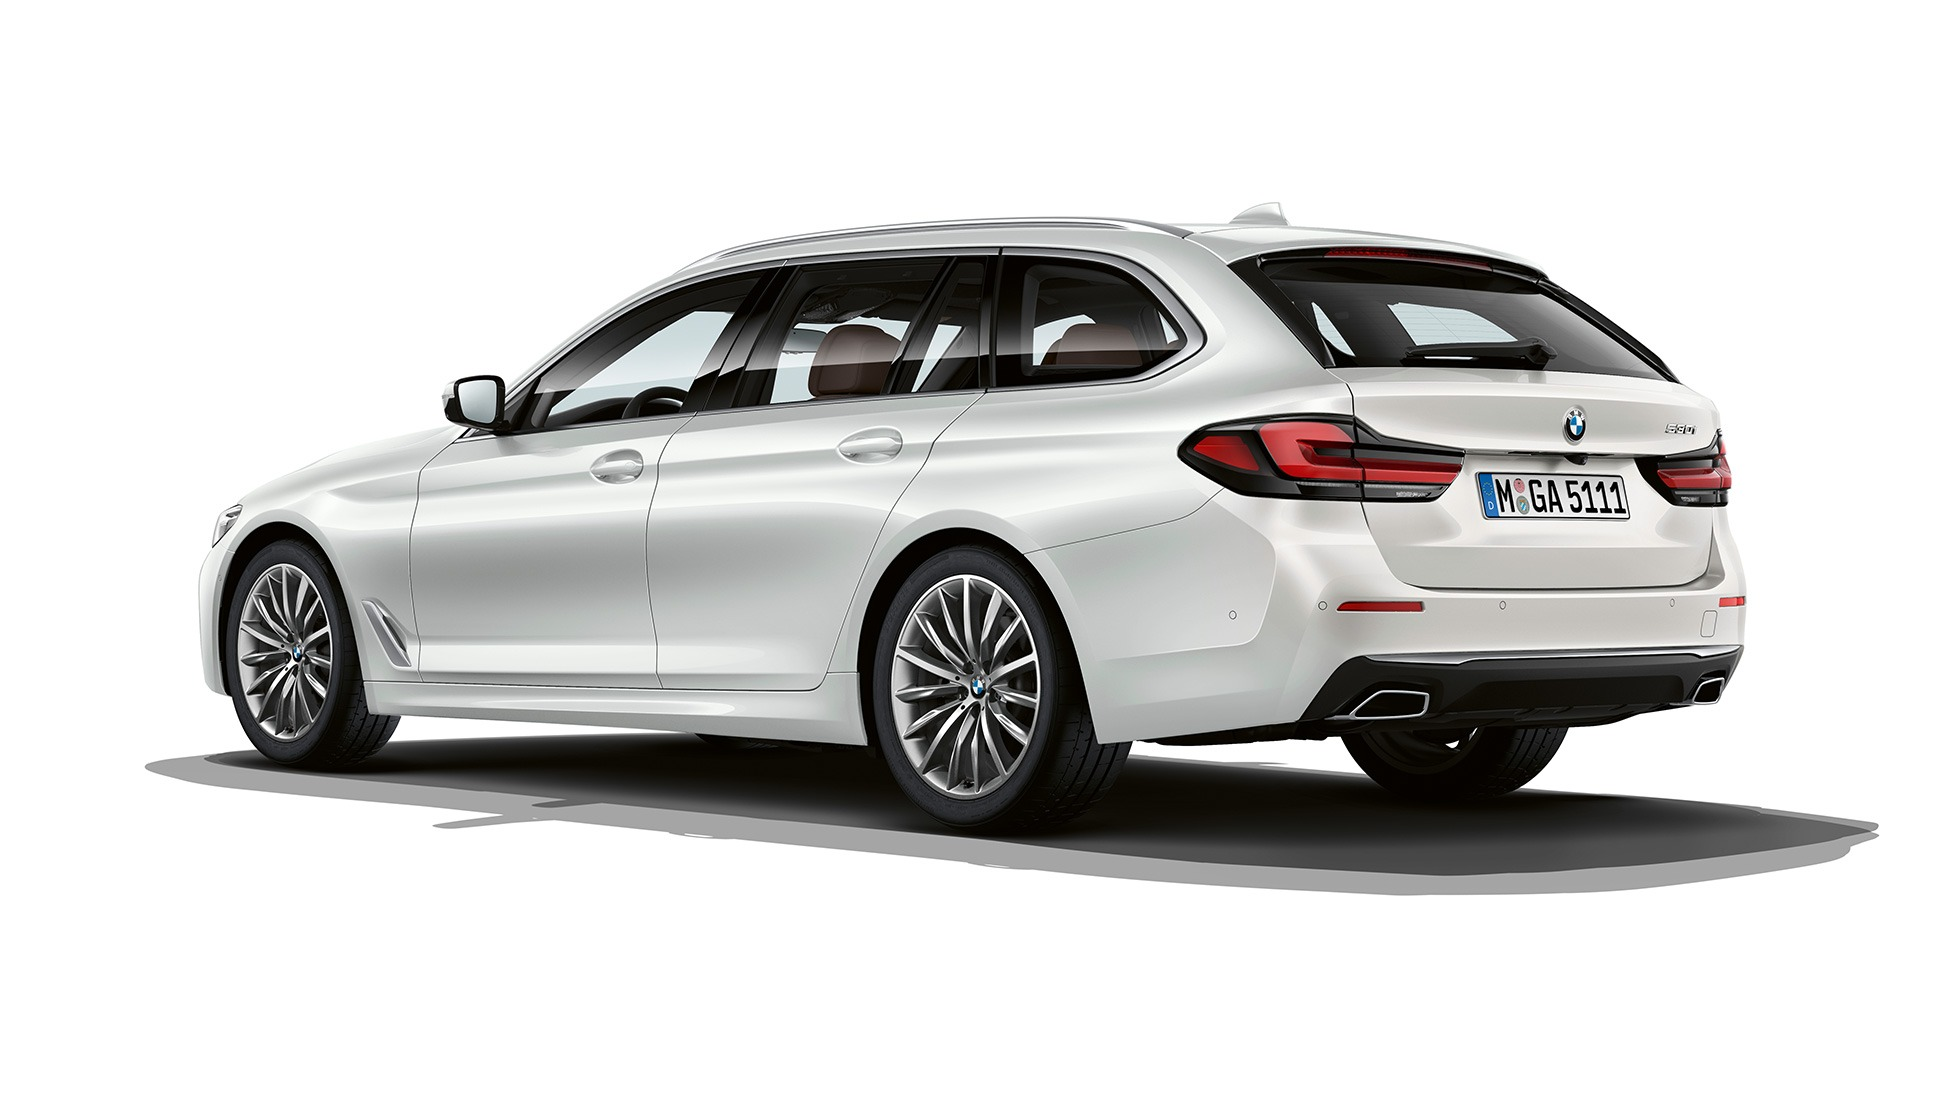 bmw-5-series-touring-models-and-equipment-lines-02-02